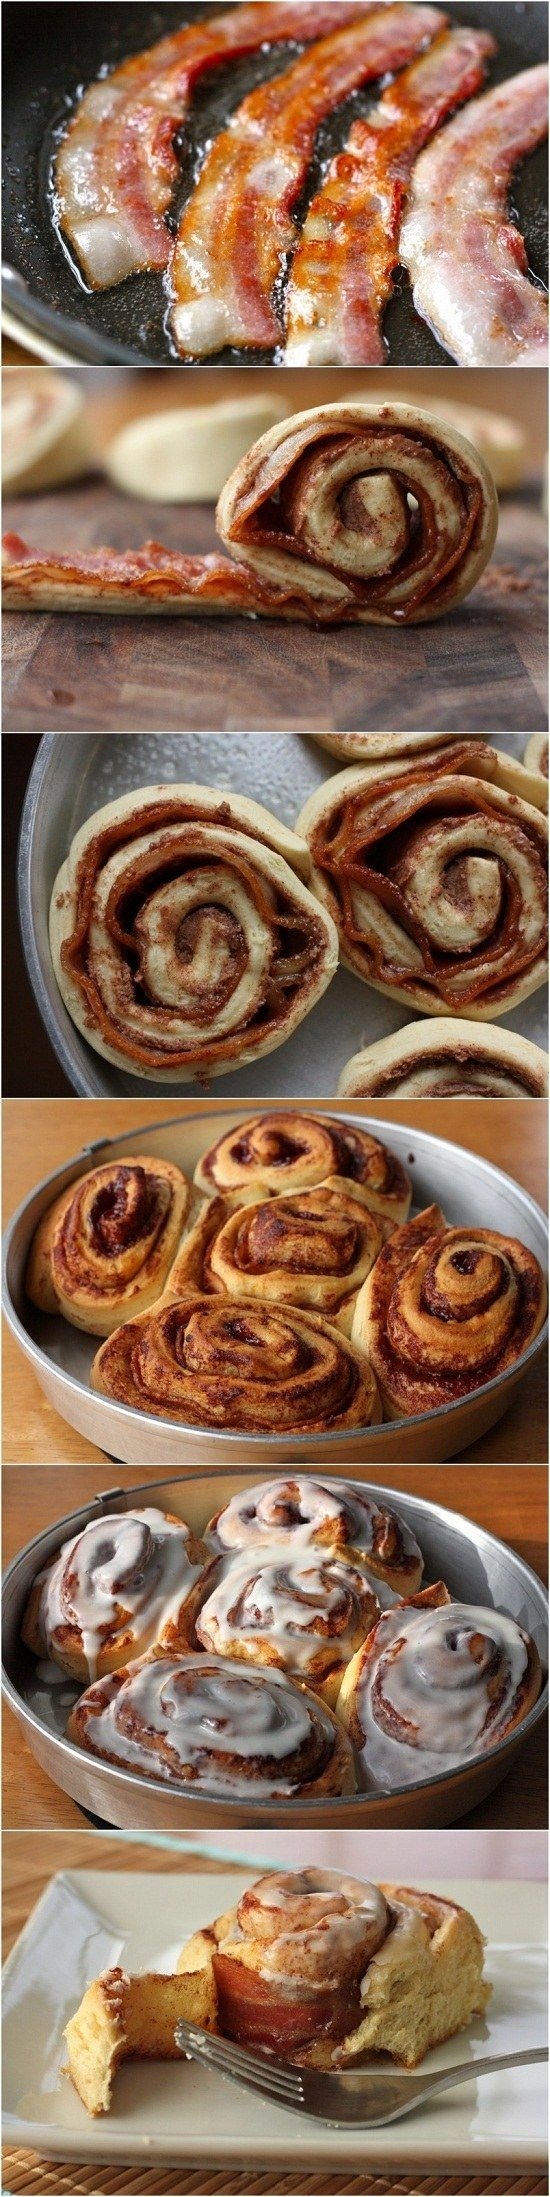 Bacon Cinnamon Rolls   Community Post: 27 Delicious Bacon Desserts You Never Knew You Needed